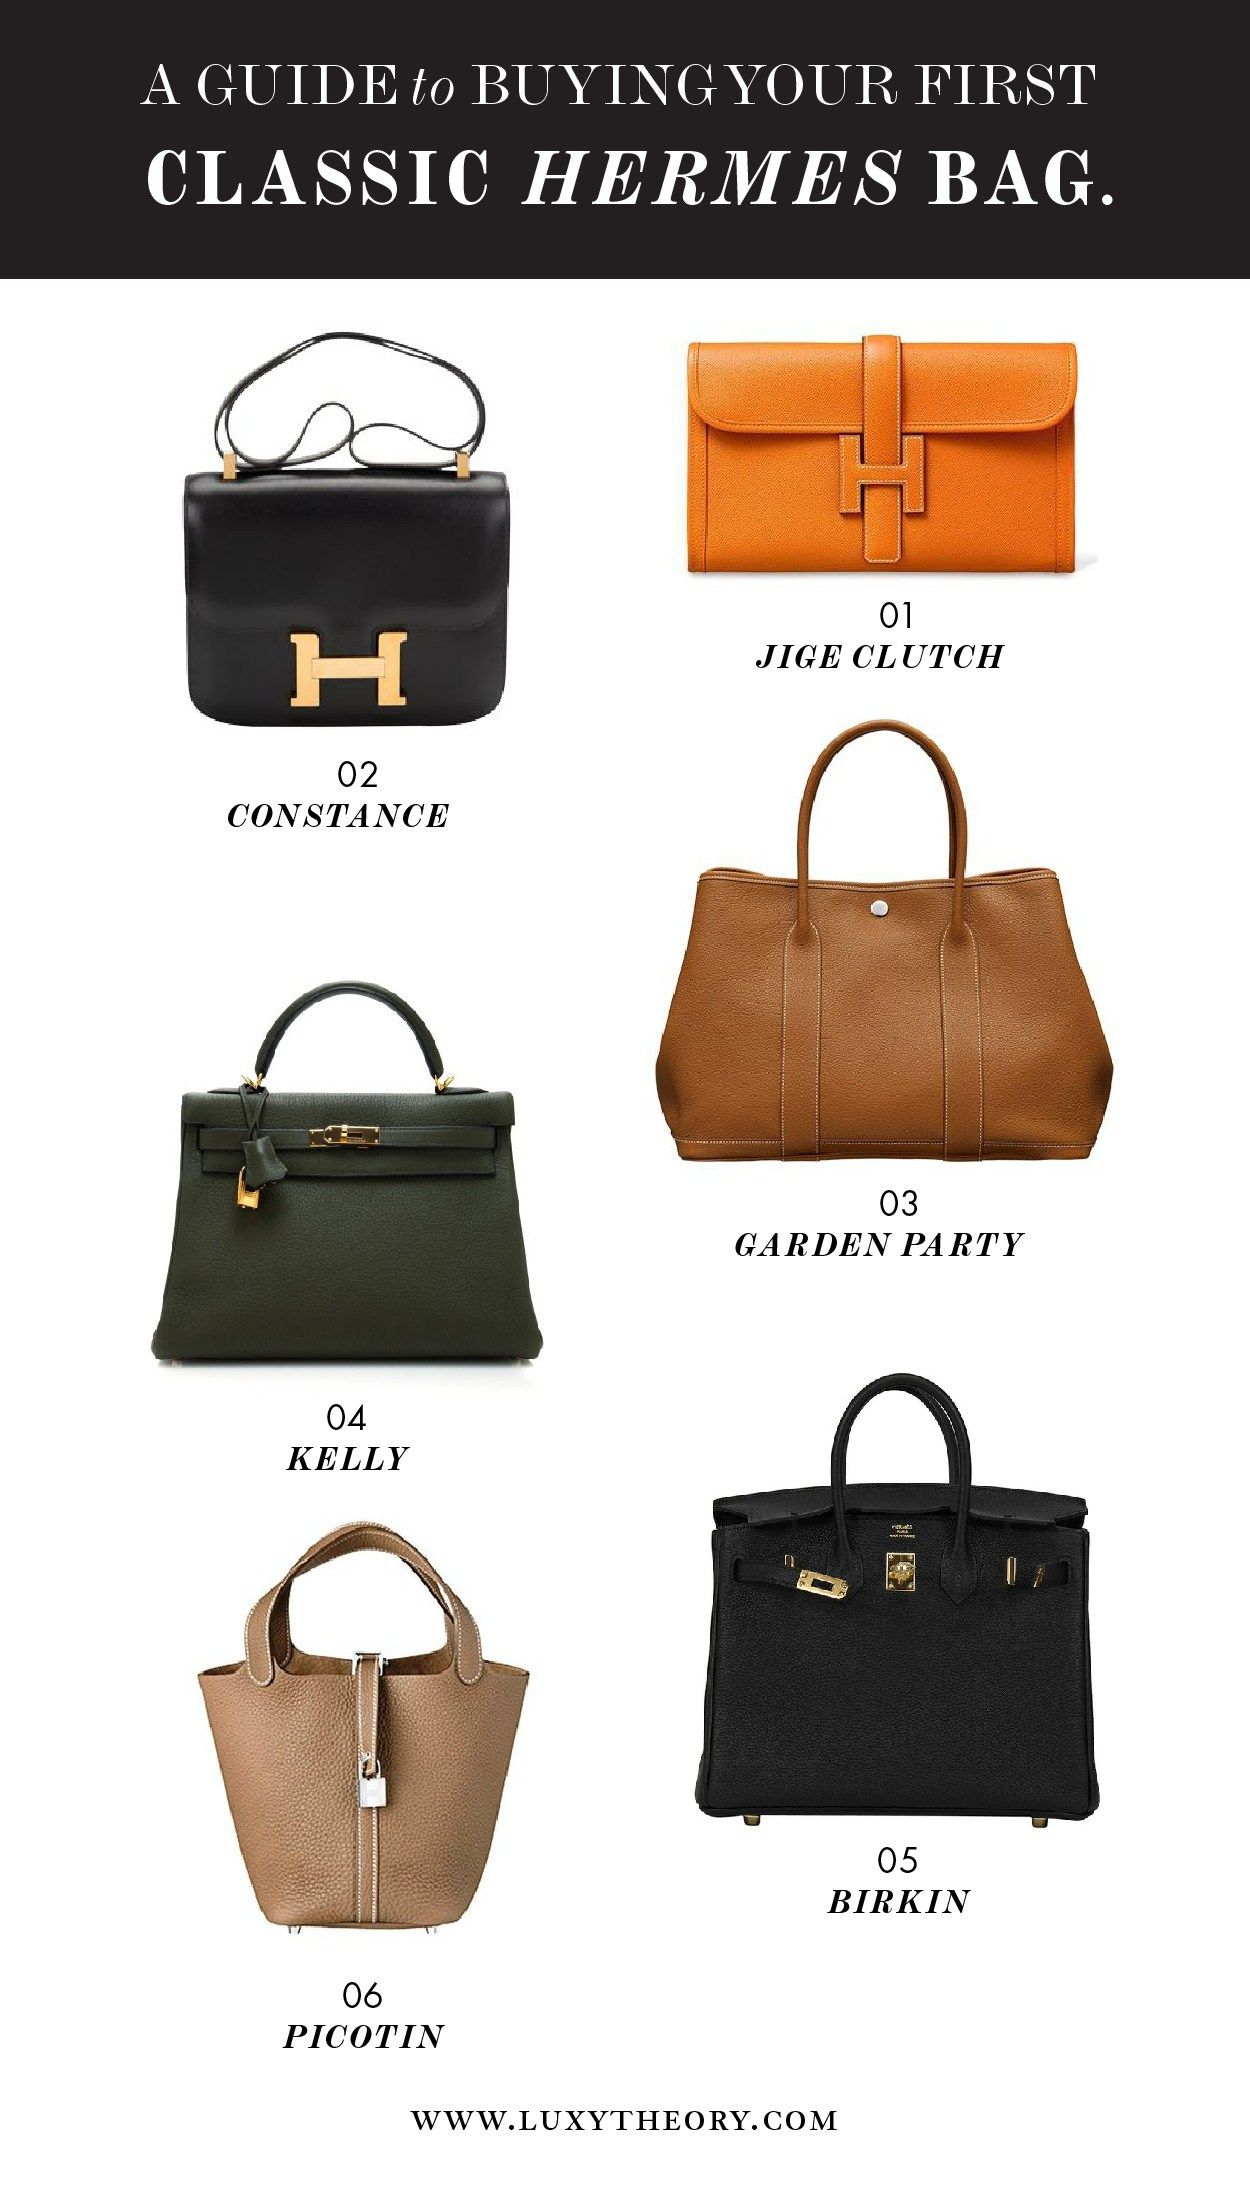 cb50ca31737e Your Guide to Buying Your First Classic Hermes Bag ( it doesn t have to be  a birkin ) - Luxy Theory Constance    Jige Clutch    Kelly    Garden Party  ...